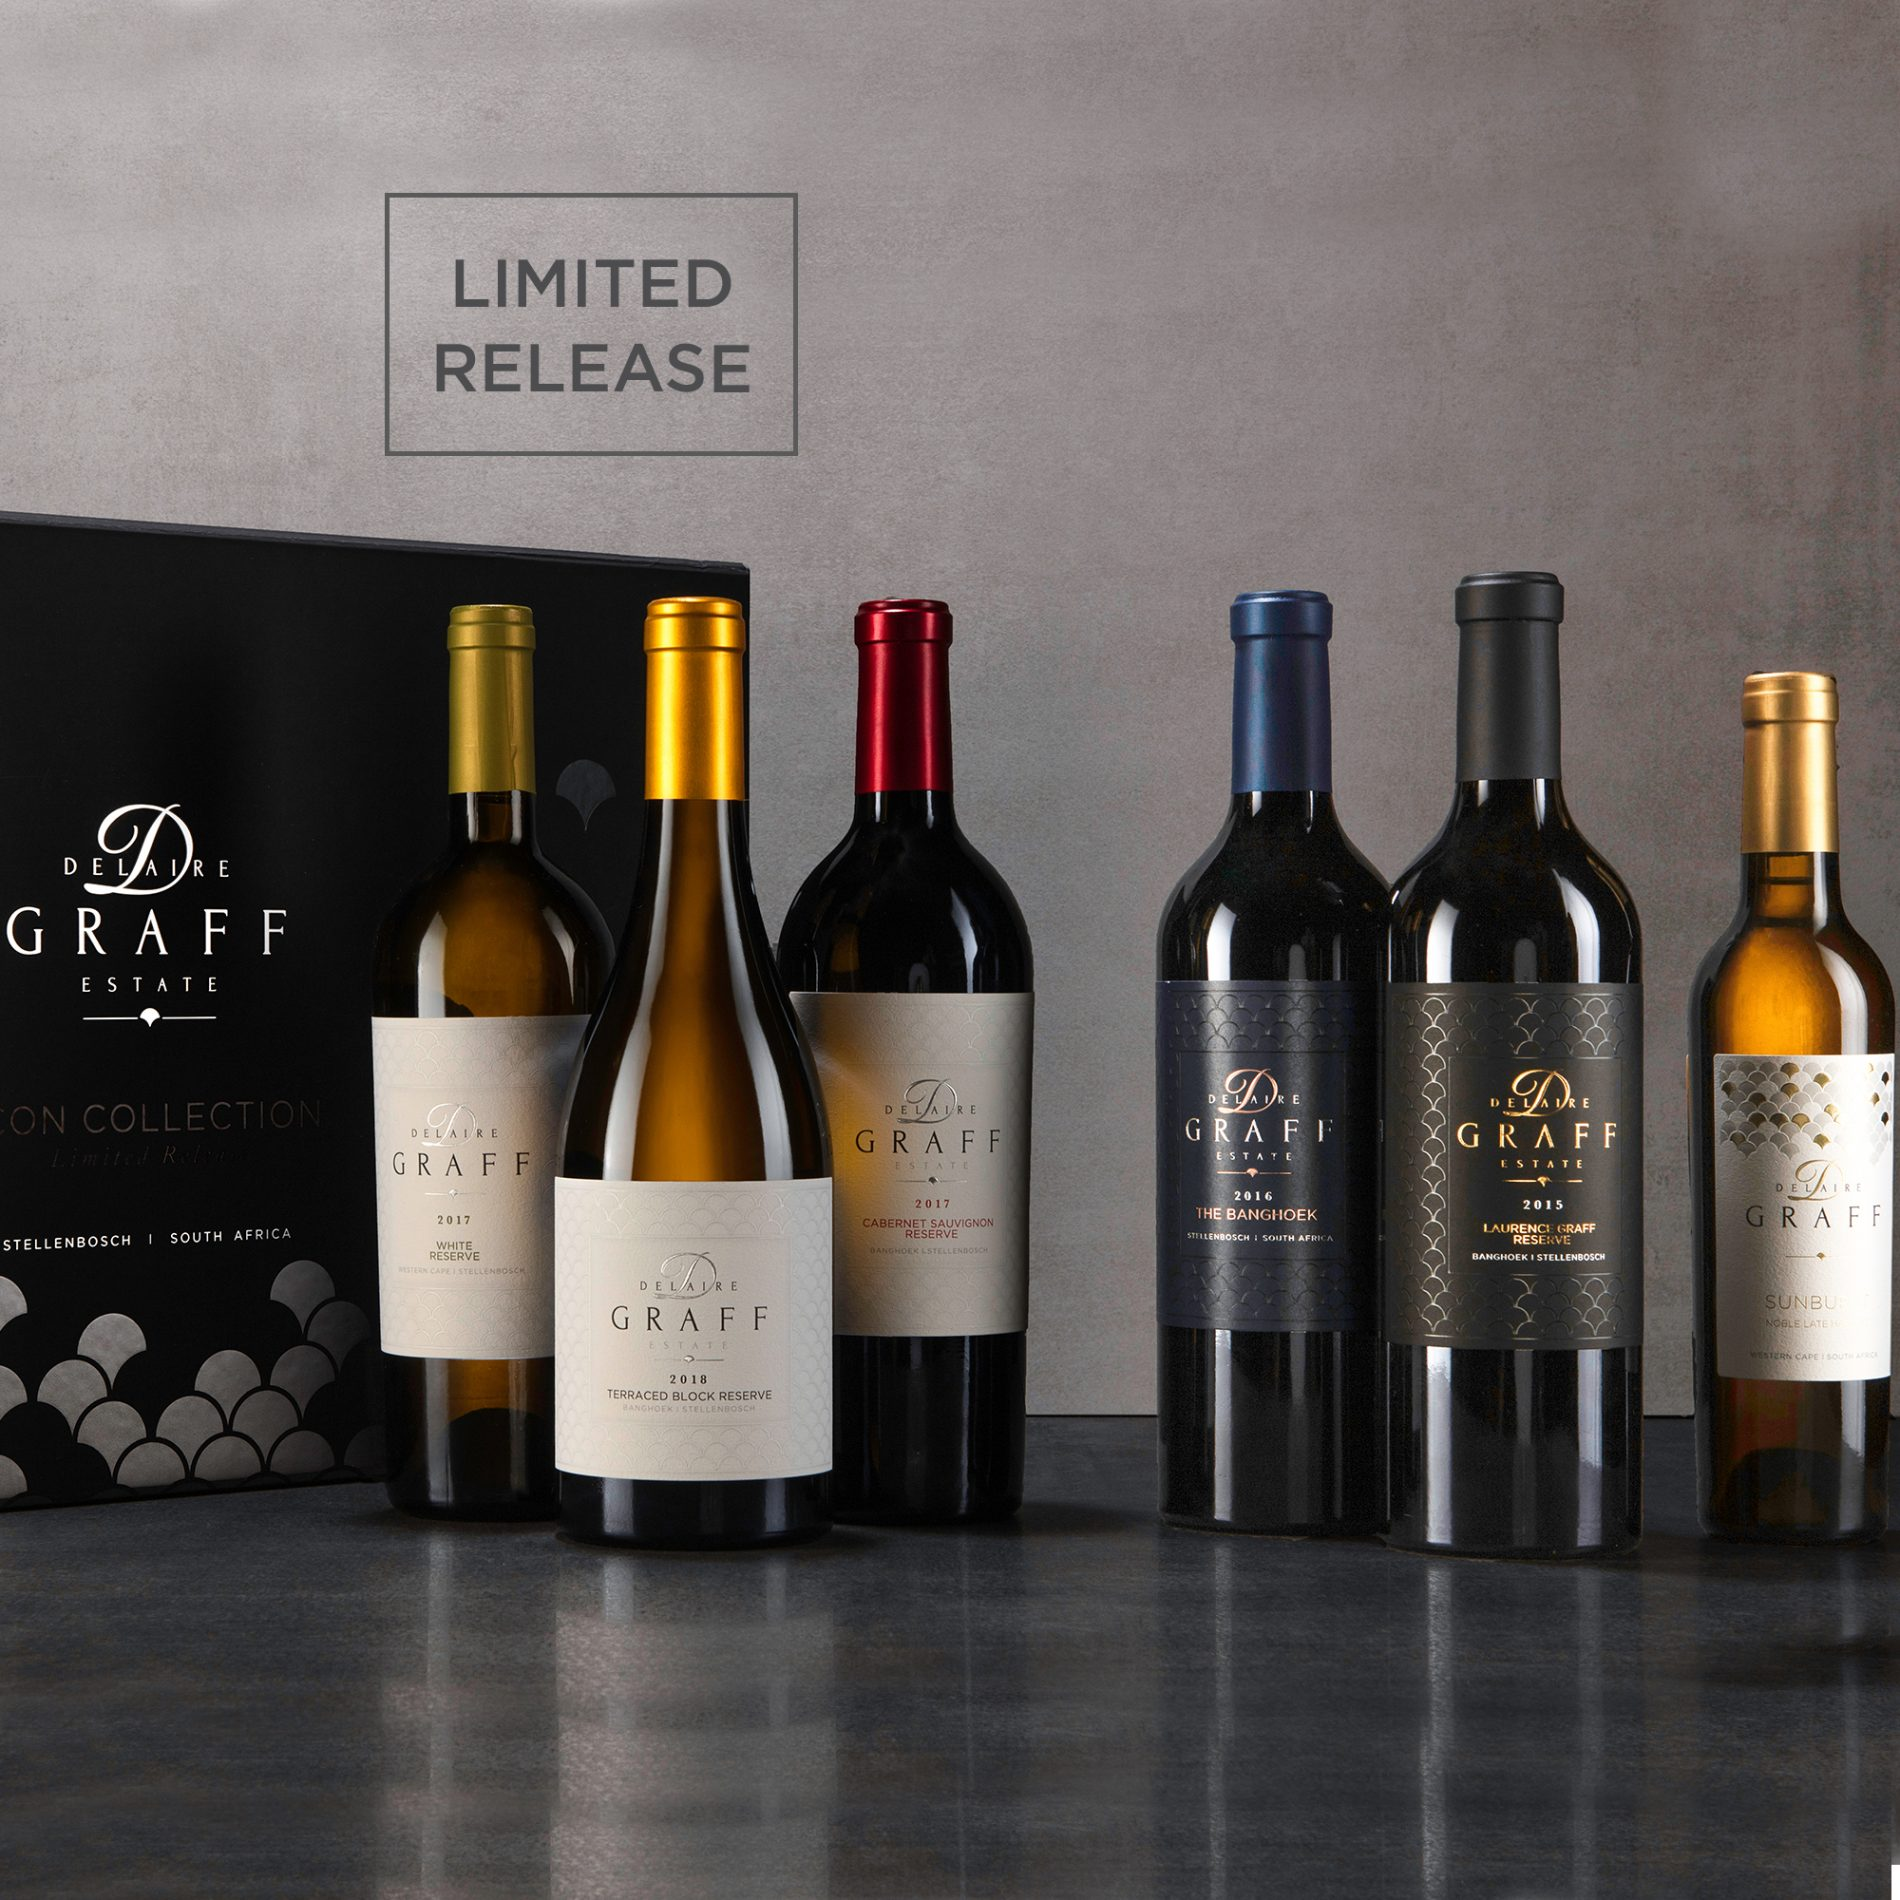 A case of Delaire Graff Icon wine